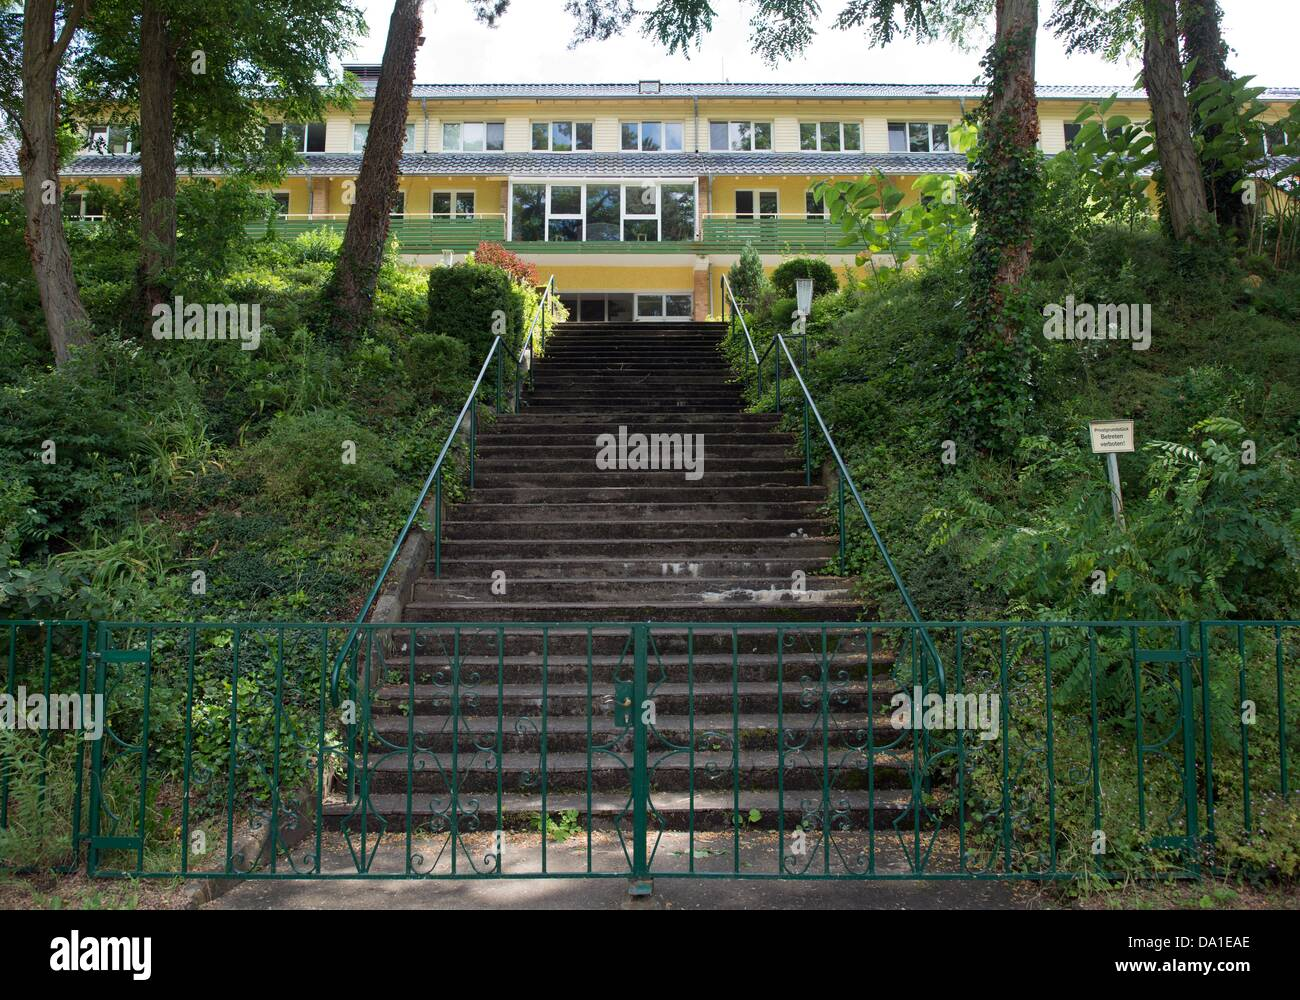 The children's and youth's home 'Haus Babenberg' of the Haasenburg GmbH is pictured in Jessen, Germany, - Stock Image